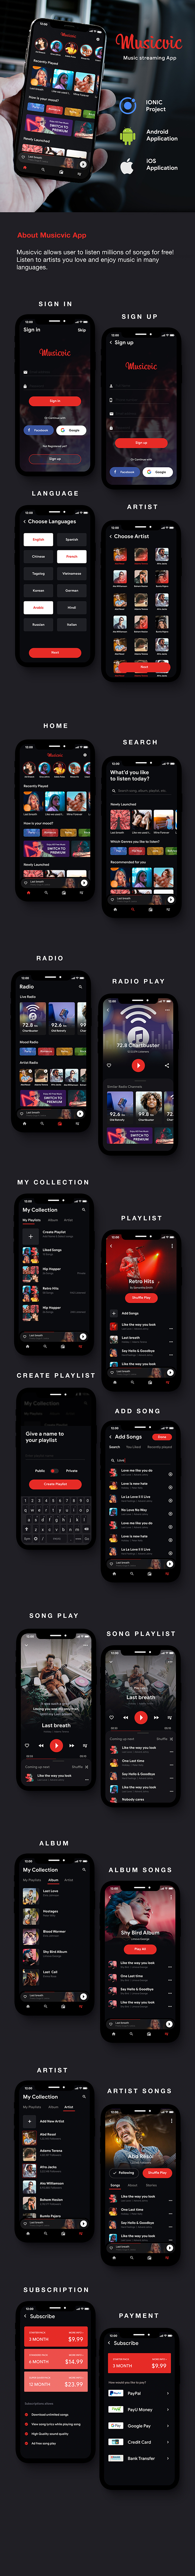 contemporary Music Streaming App Template | HMTL + Css IONIC 3 | Musicvic - 2